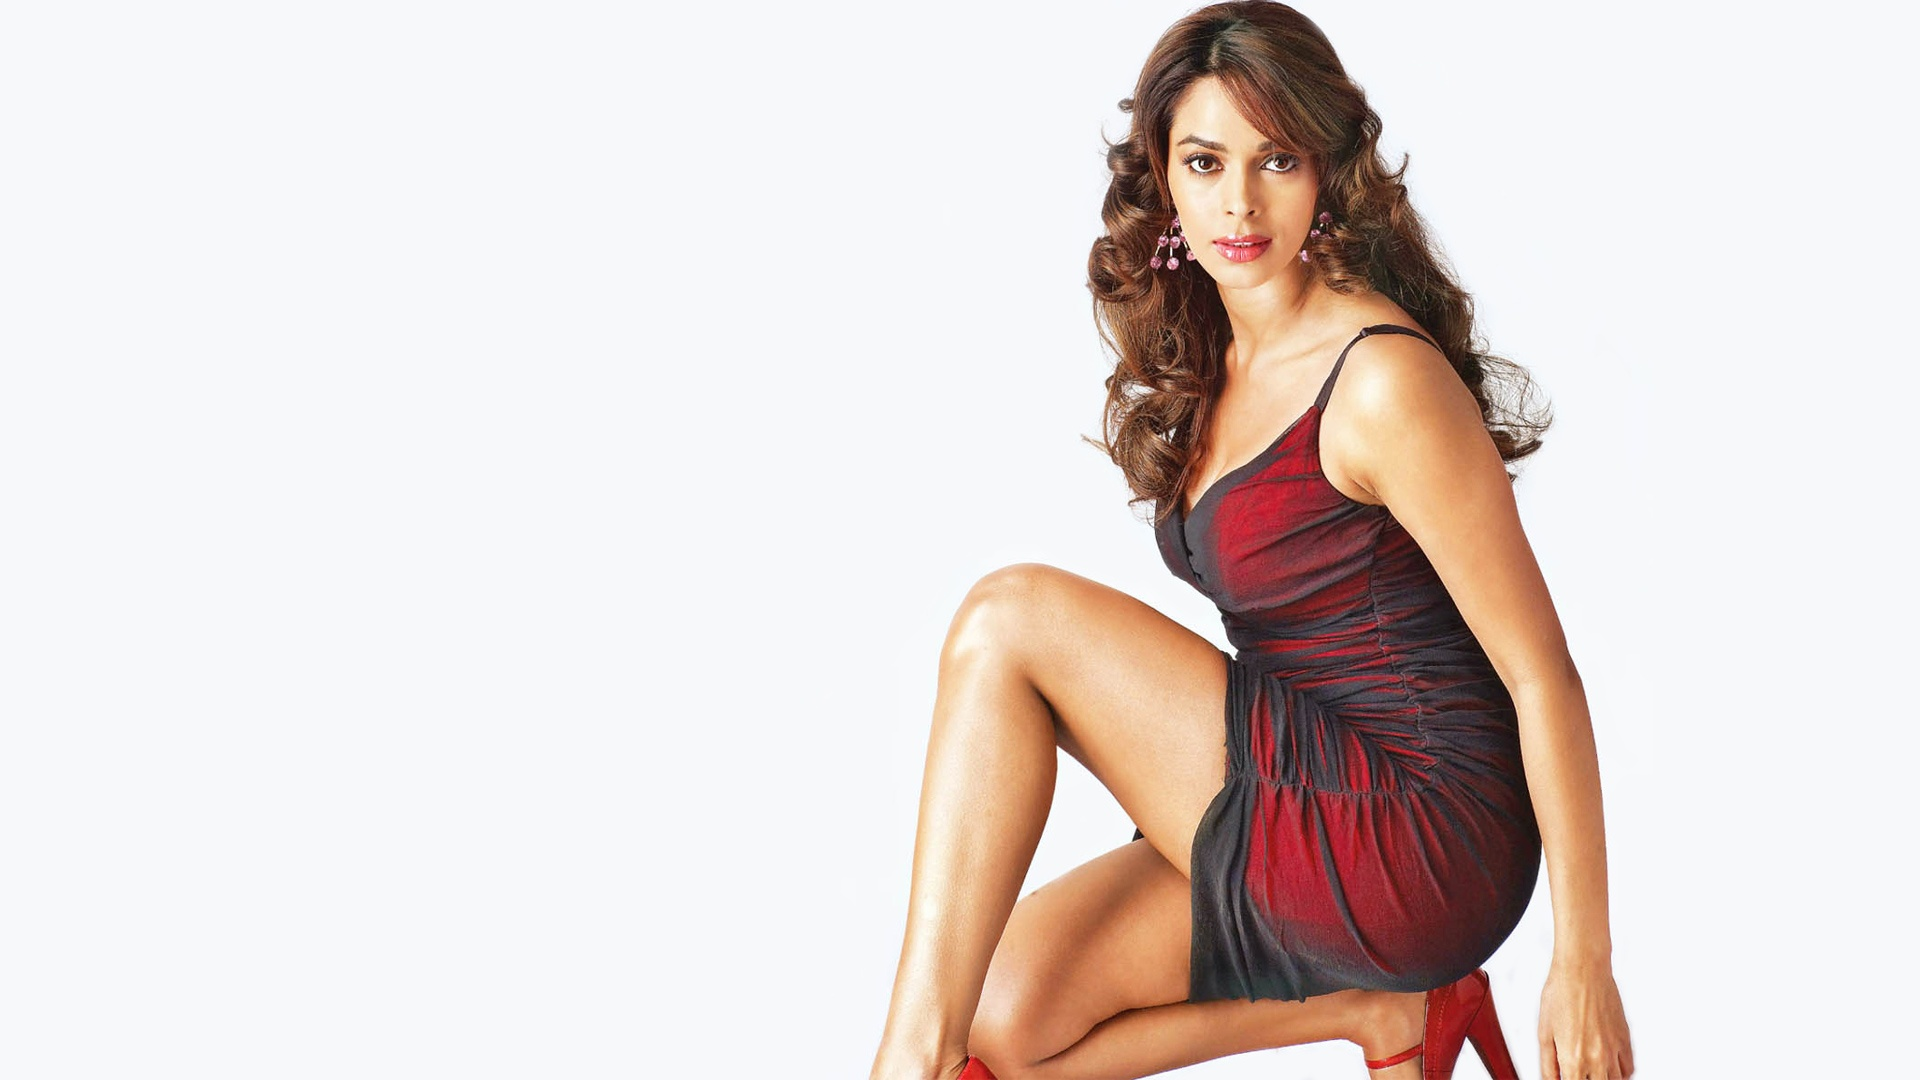 mallika sherawat hot bollywood actress wallpapers in jpg format for